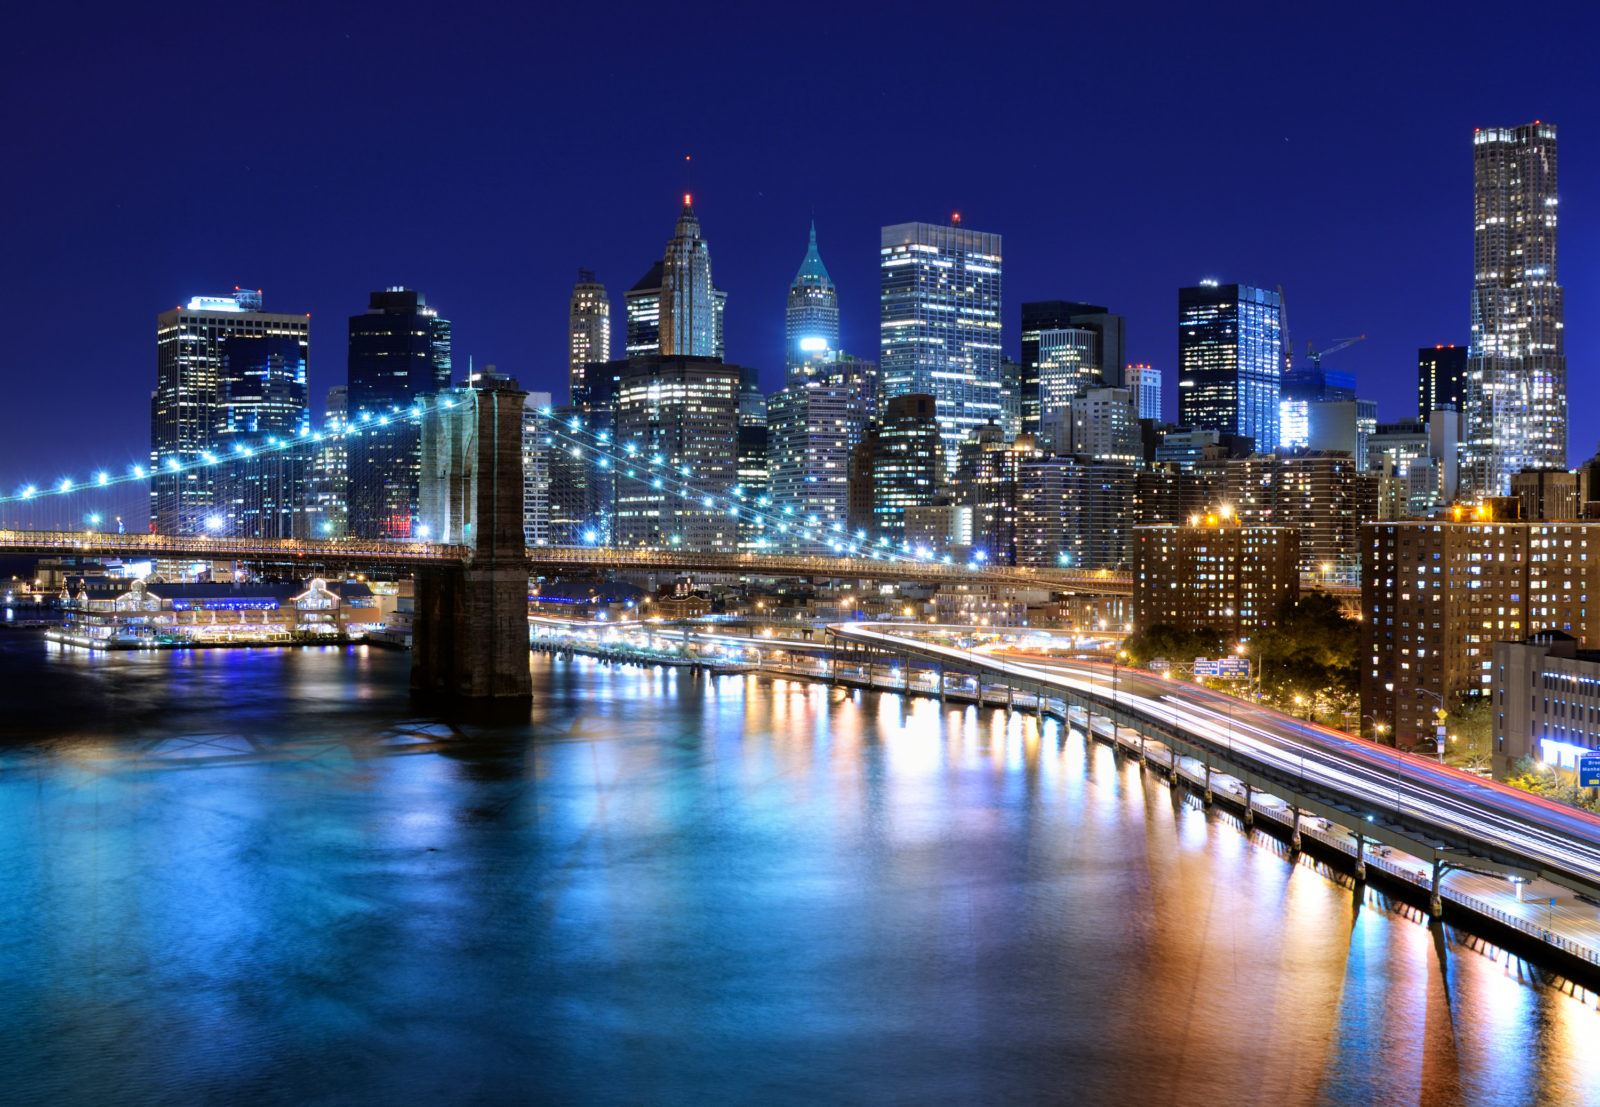 Stock Photo - New York City